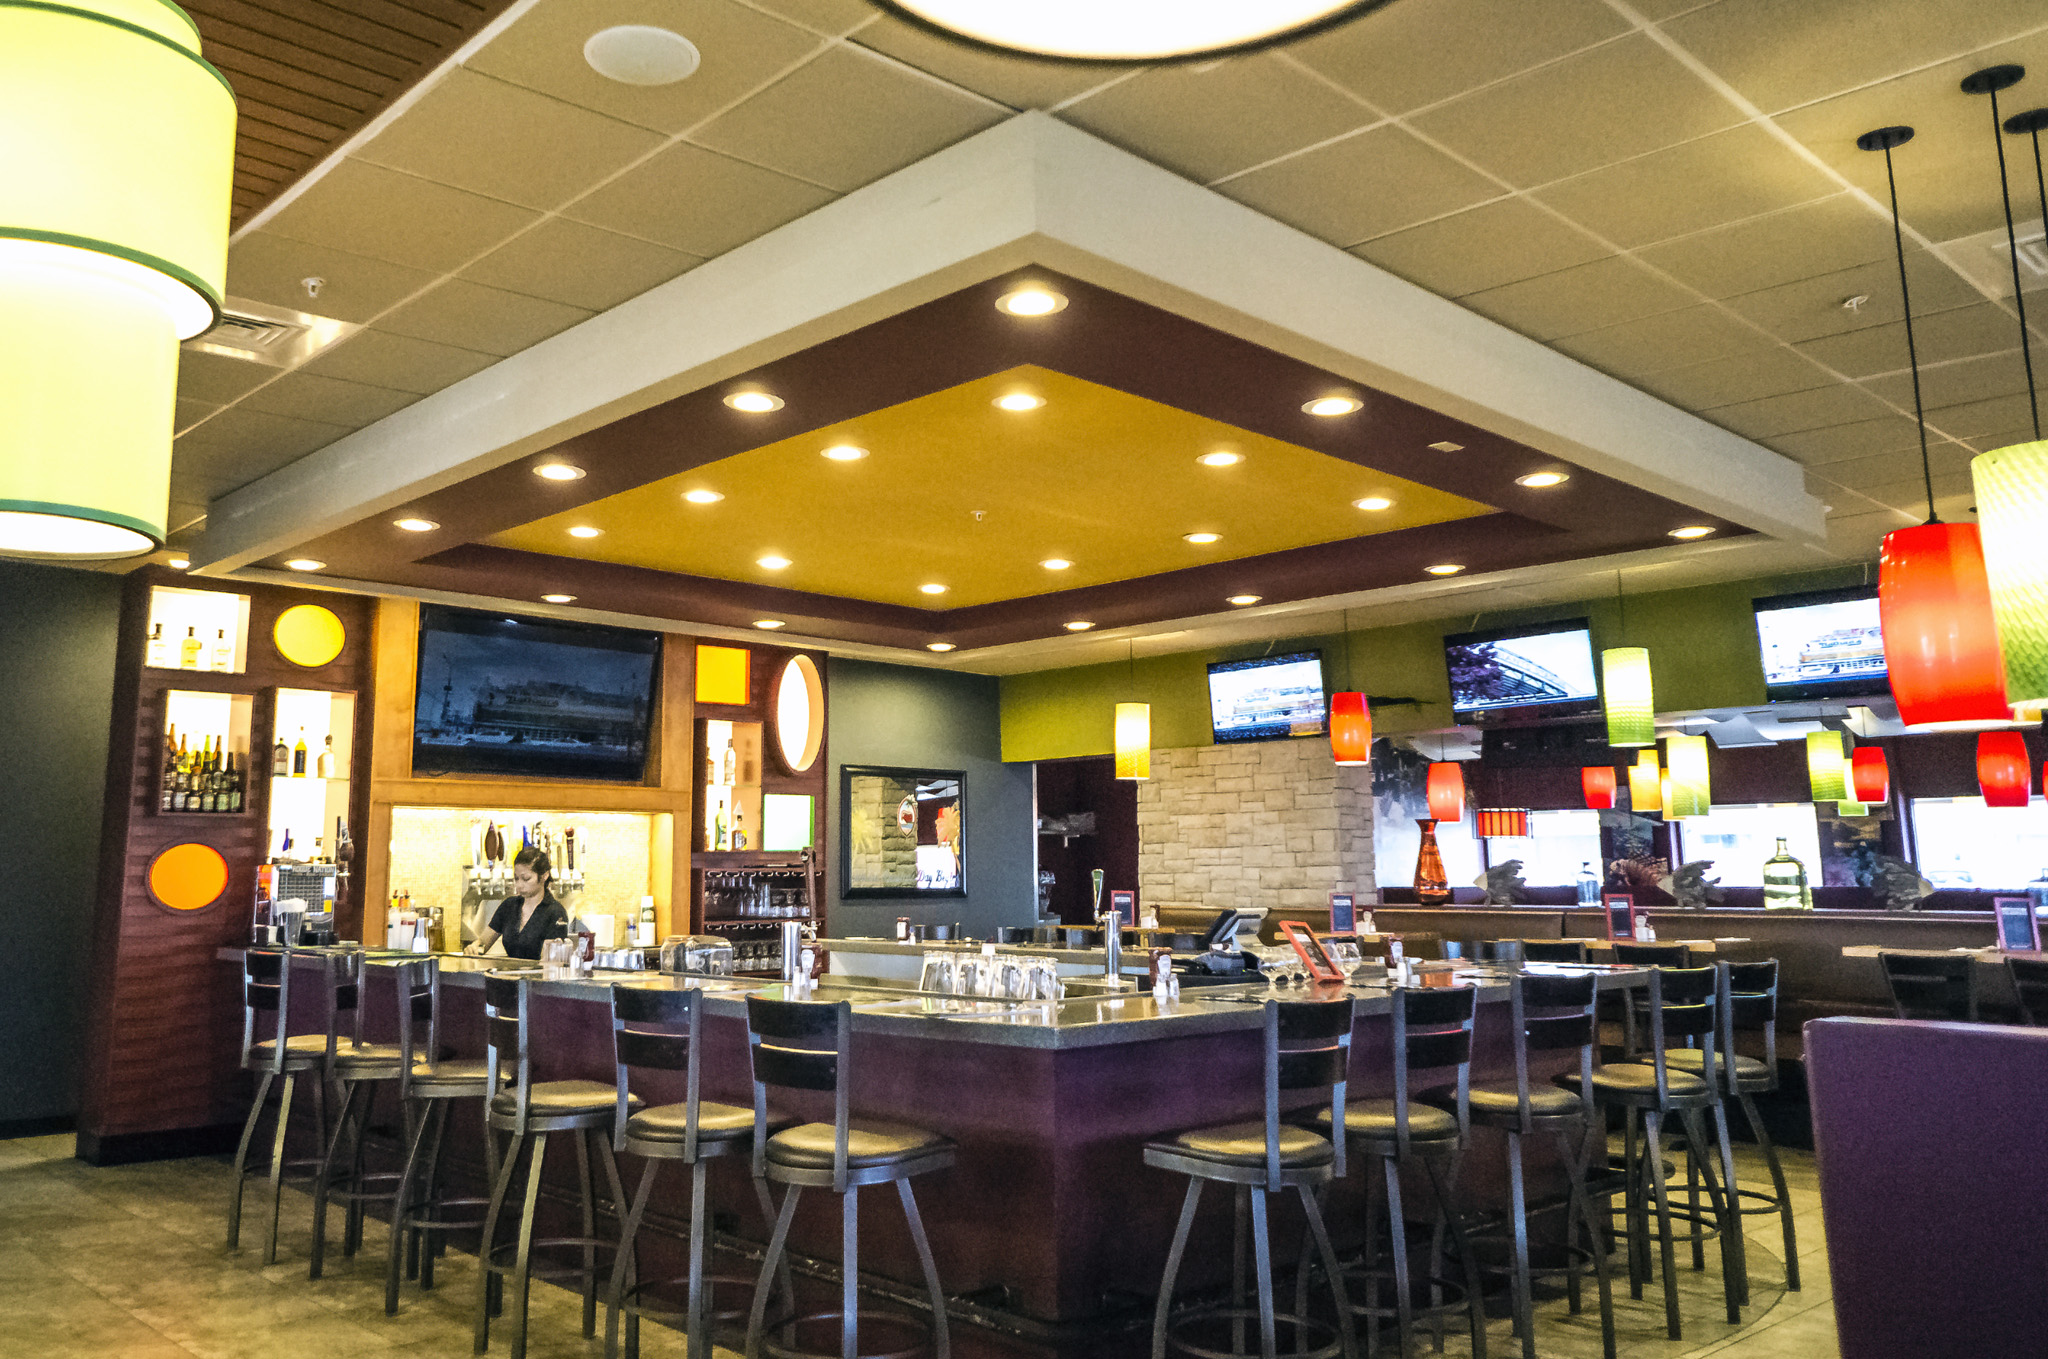 Applebees Interior 4.jpg